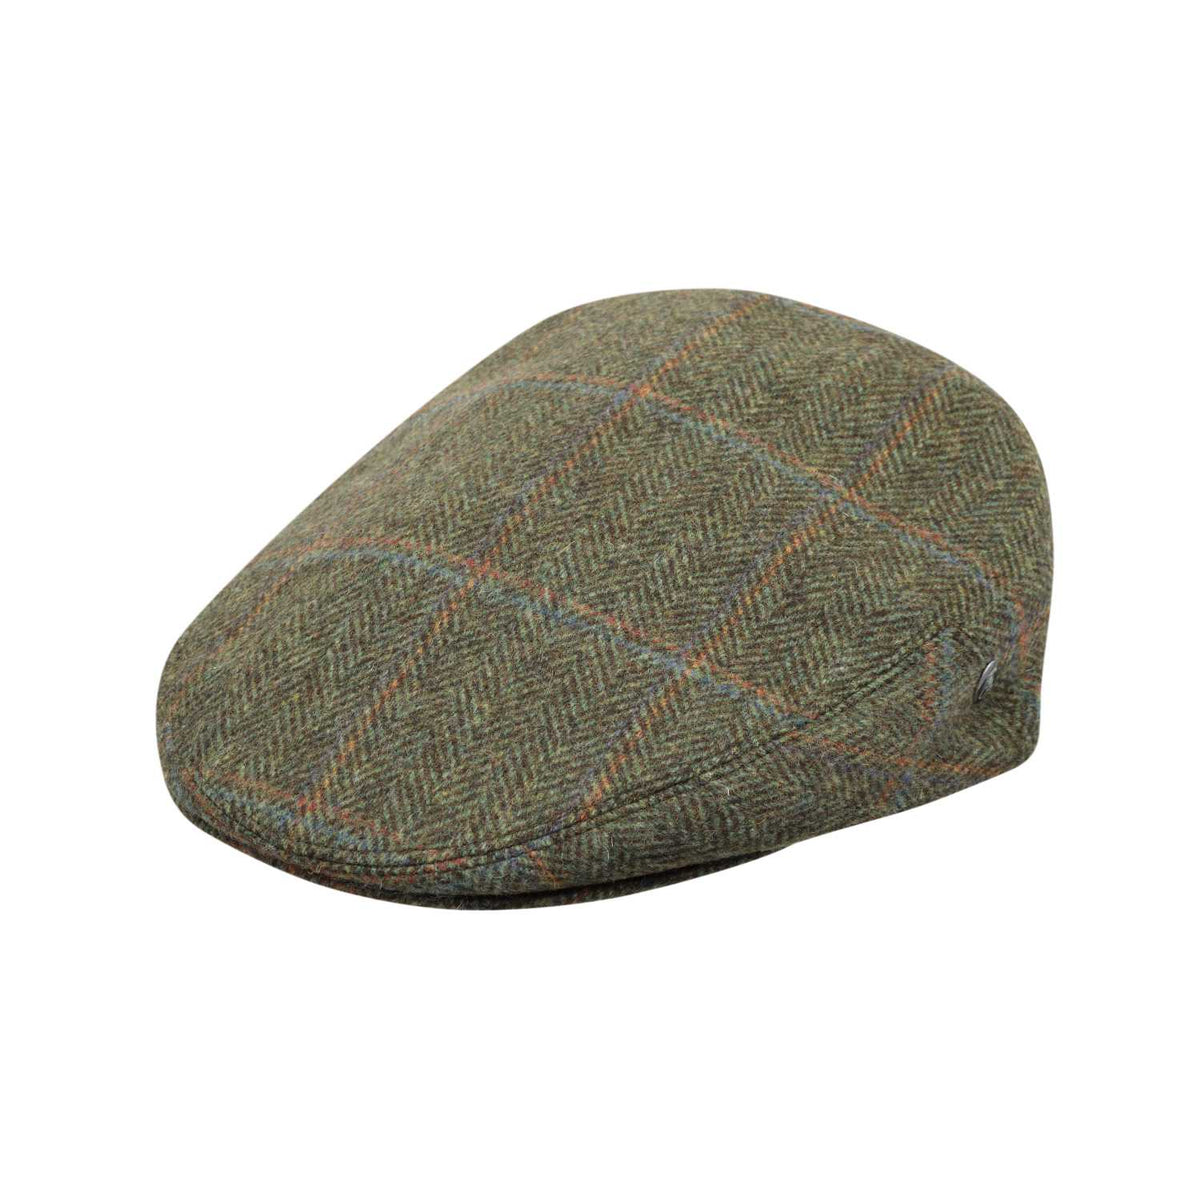 The Cashmere Choice - City Sport - Cool Comfort - Wool Flat Cap - Green Herrningbone 3402